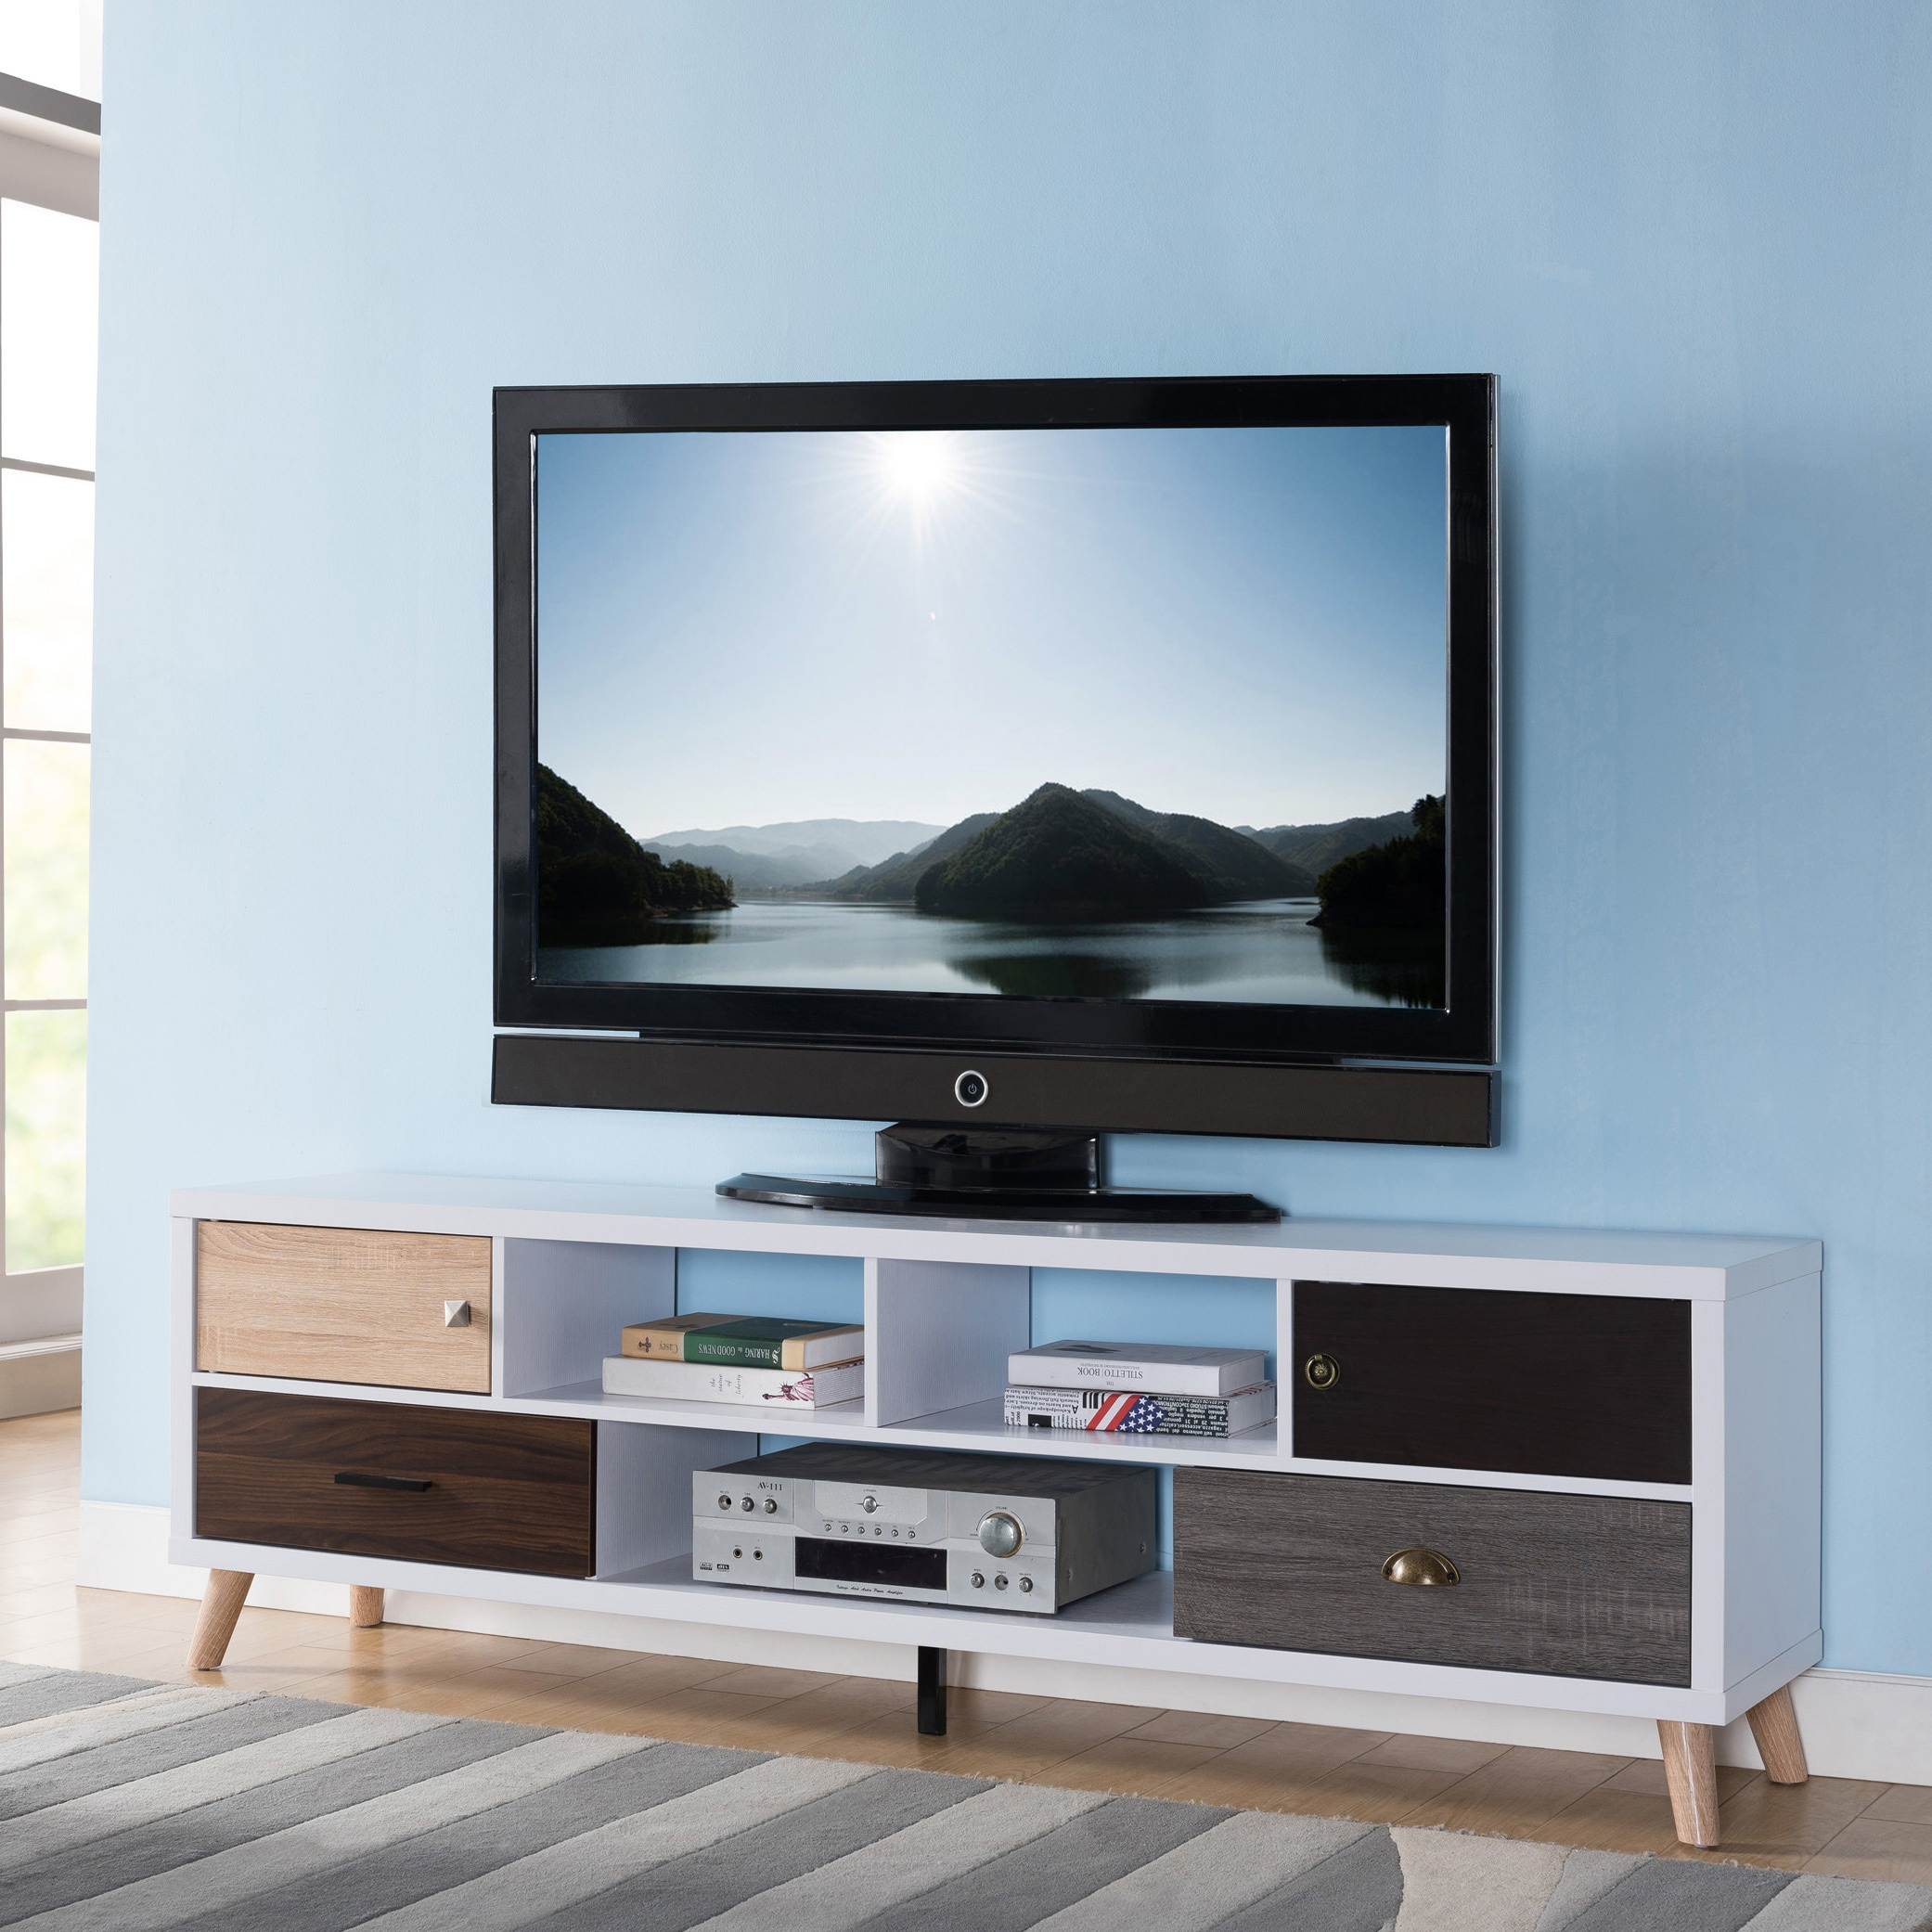 Furniture Of America Kristen Mid Century Modern Multicolored Storage Tv Stand Free Shipping Today 22397981